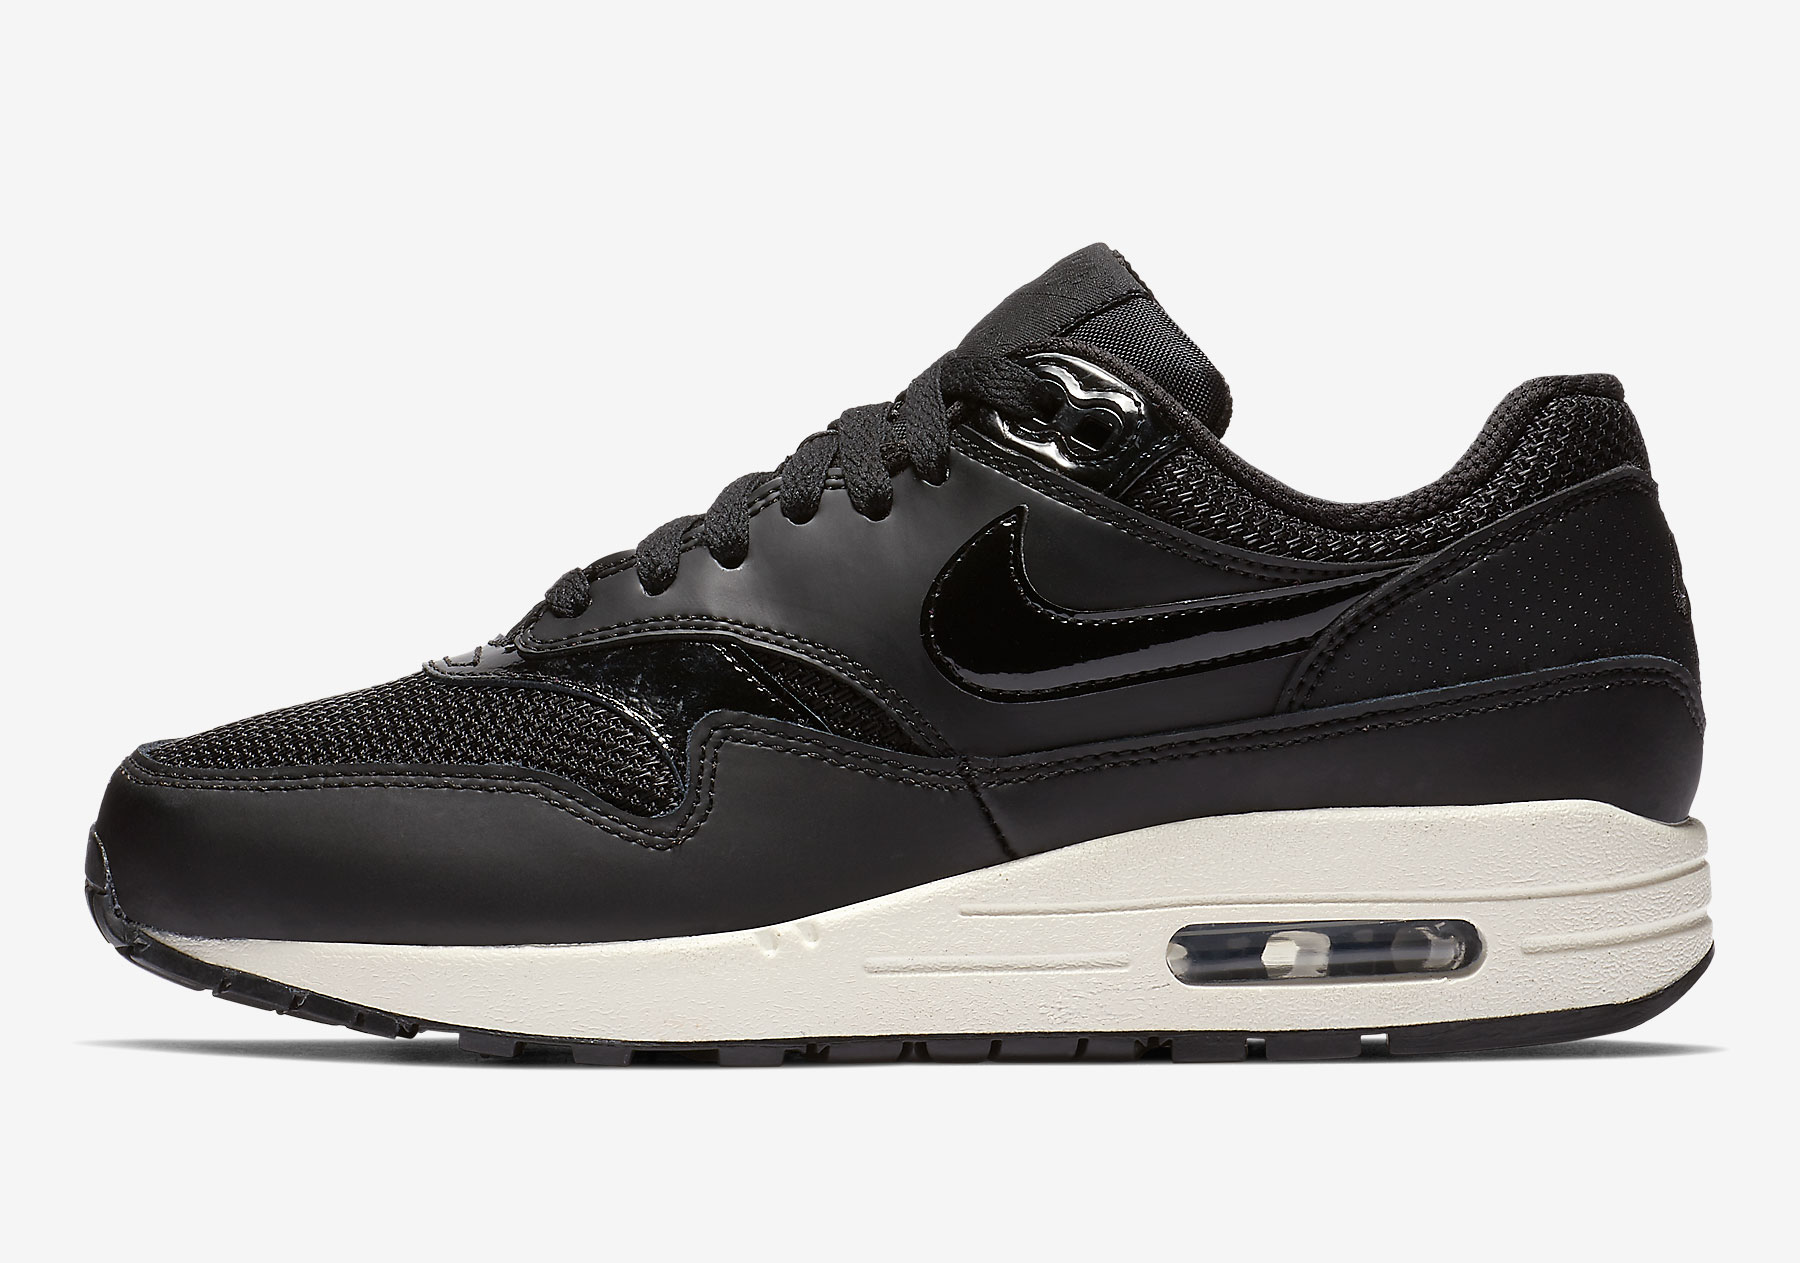 big sale 6f6e1 84eca The Nike Air Max 1 Arrives In A Stealth-Themed Colorway